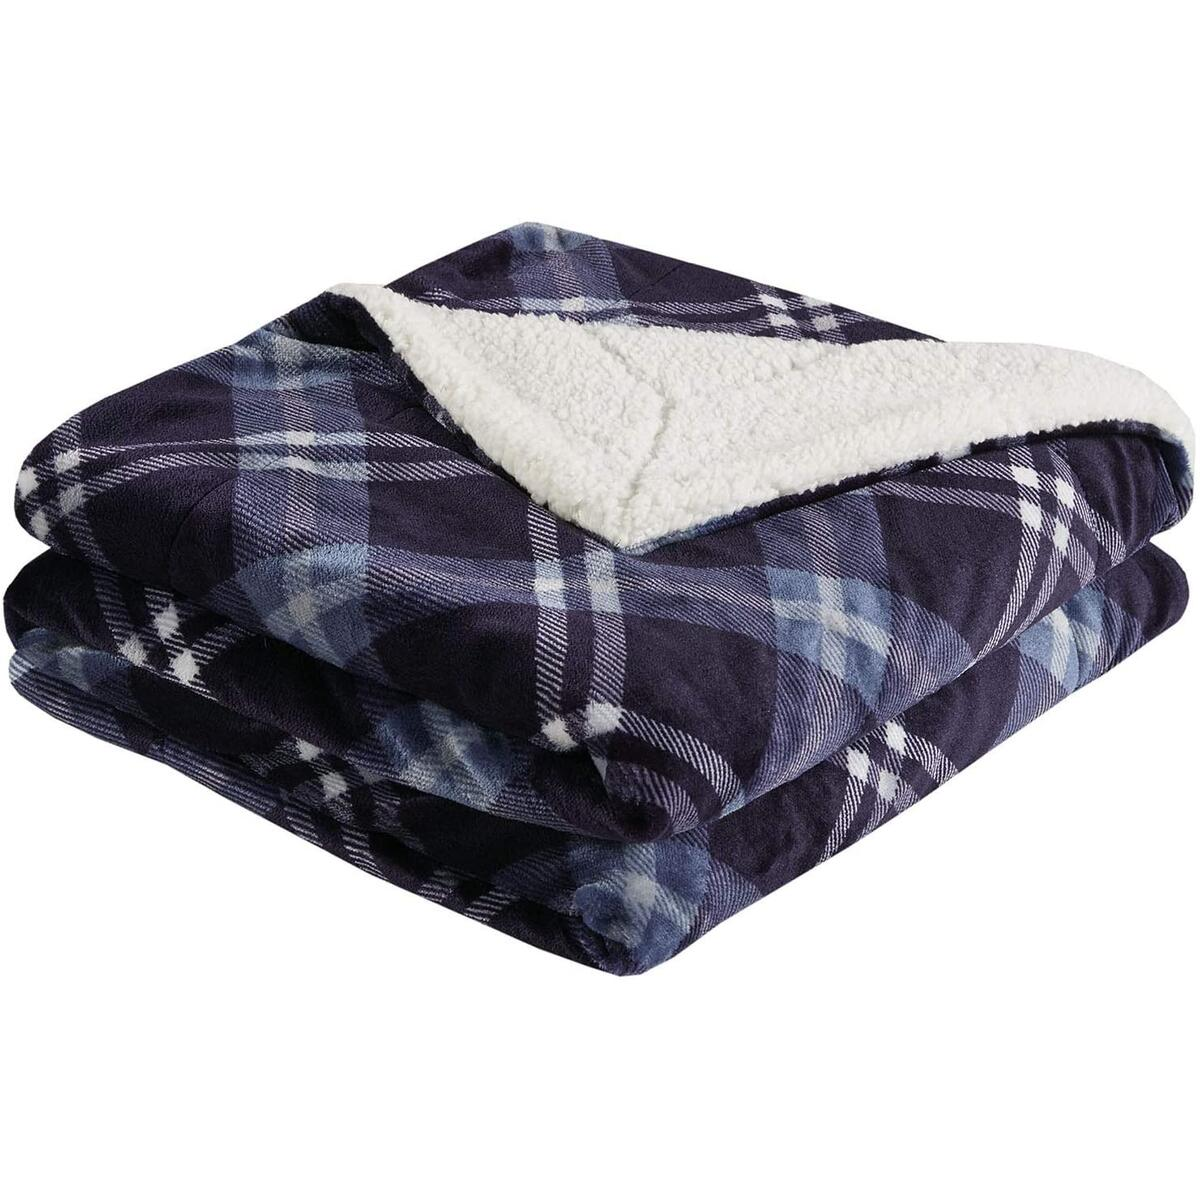 Soft Sherpa Fleece Throw Blanket Plaid Pattern, Cozy Plush Flannel Blanket for Sofa, Couch, Bed, Travel - 50x60 Inches, Blue Plaid